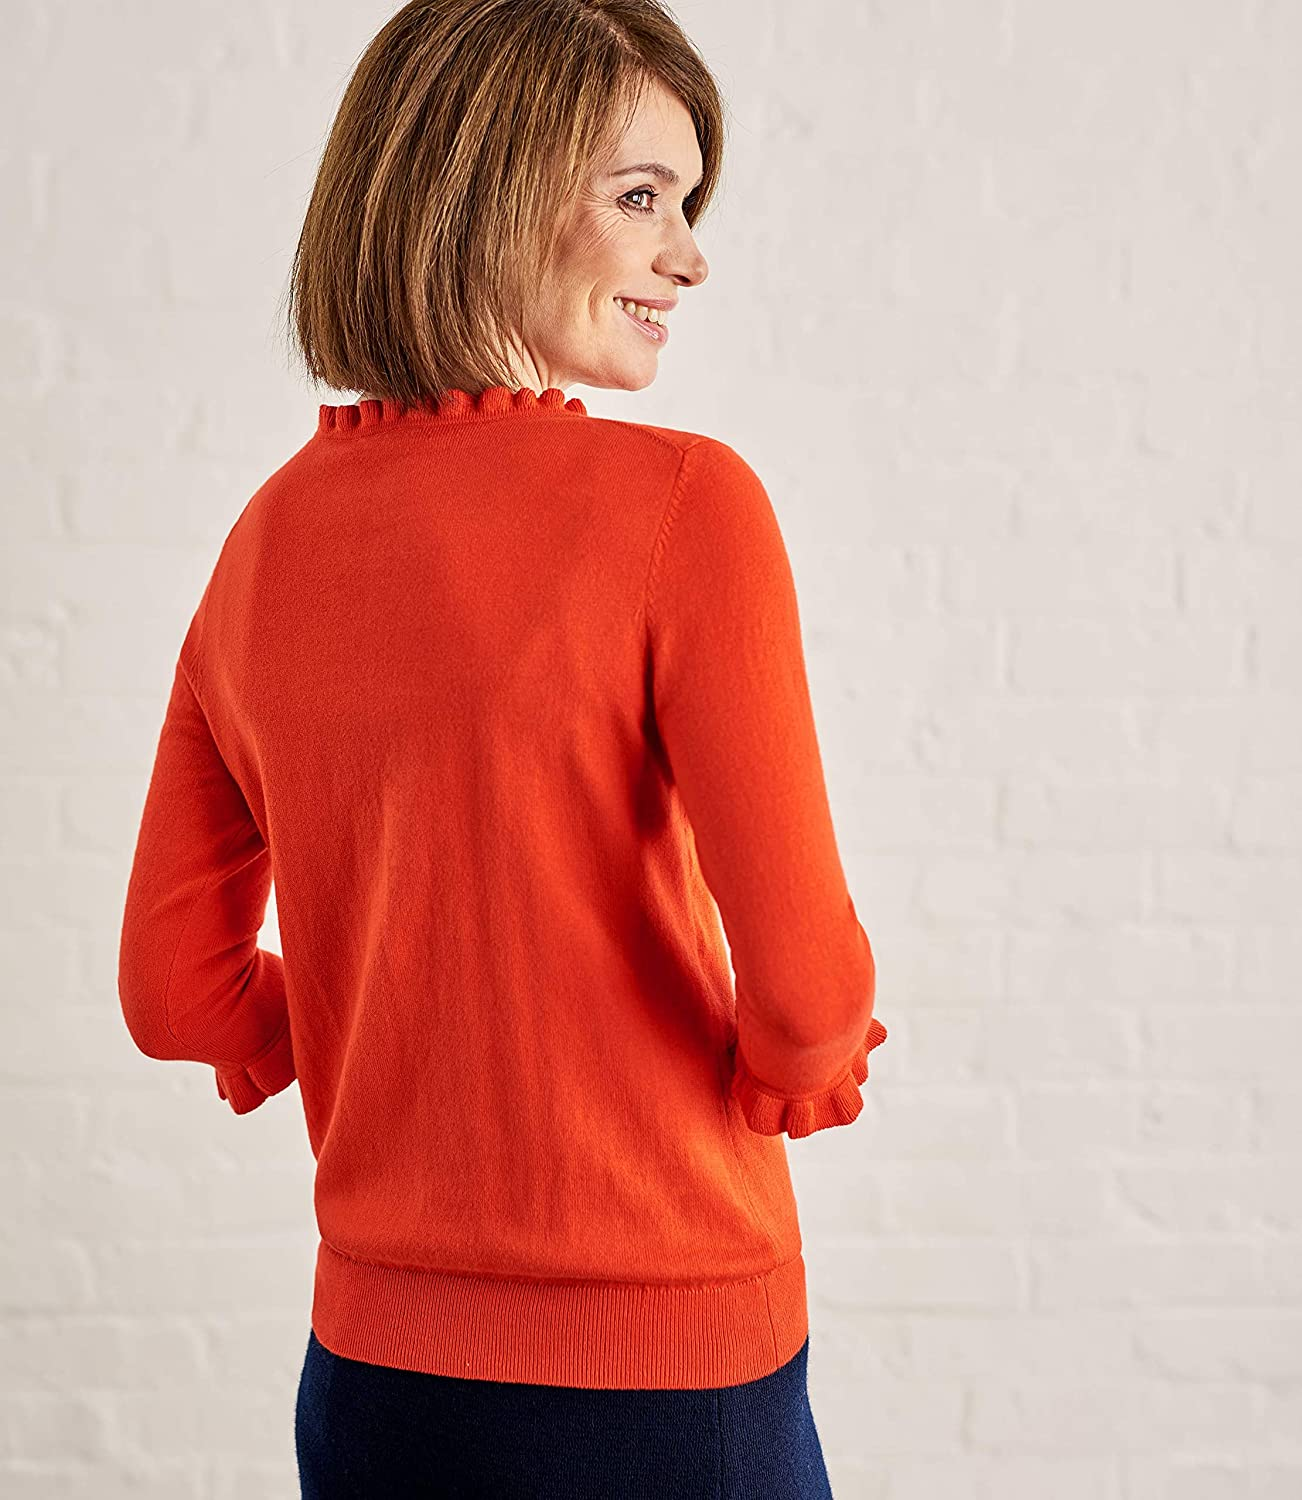 Wool Overs Womens Frill Neck Sweater Bright Coral S